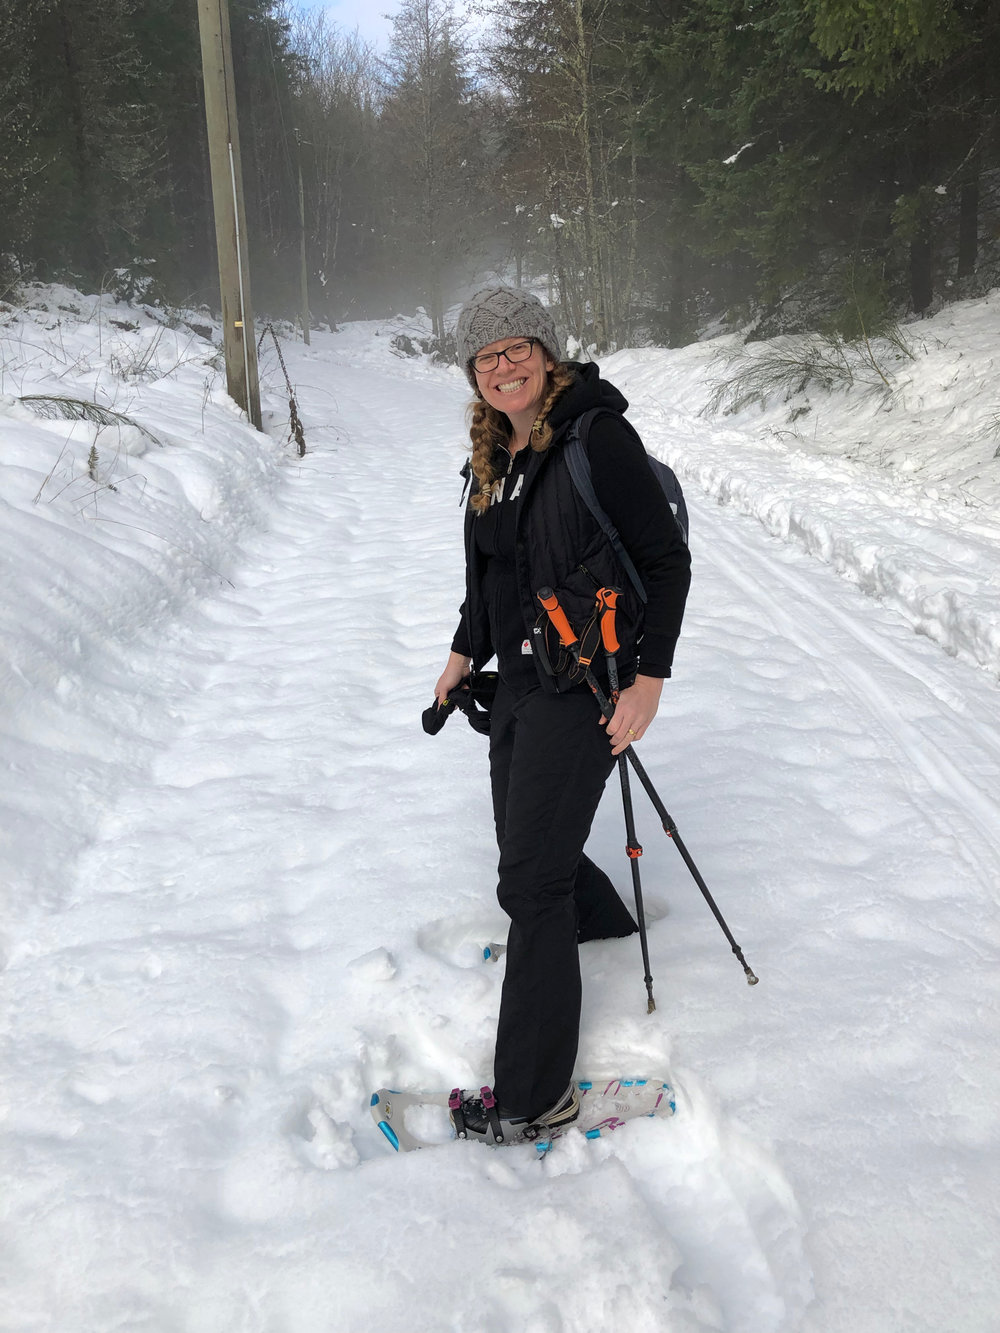 It was the first time in a couple of years that we've pulled out the snowshoes.